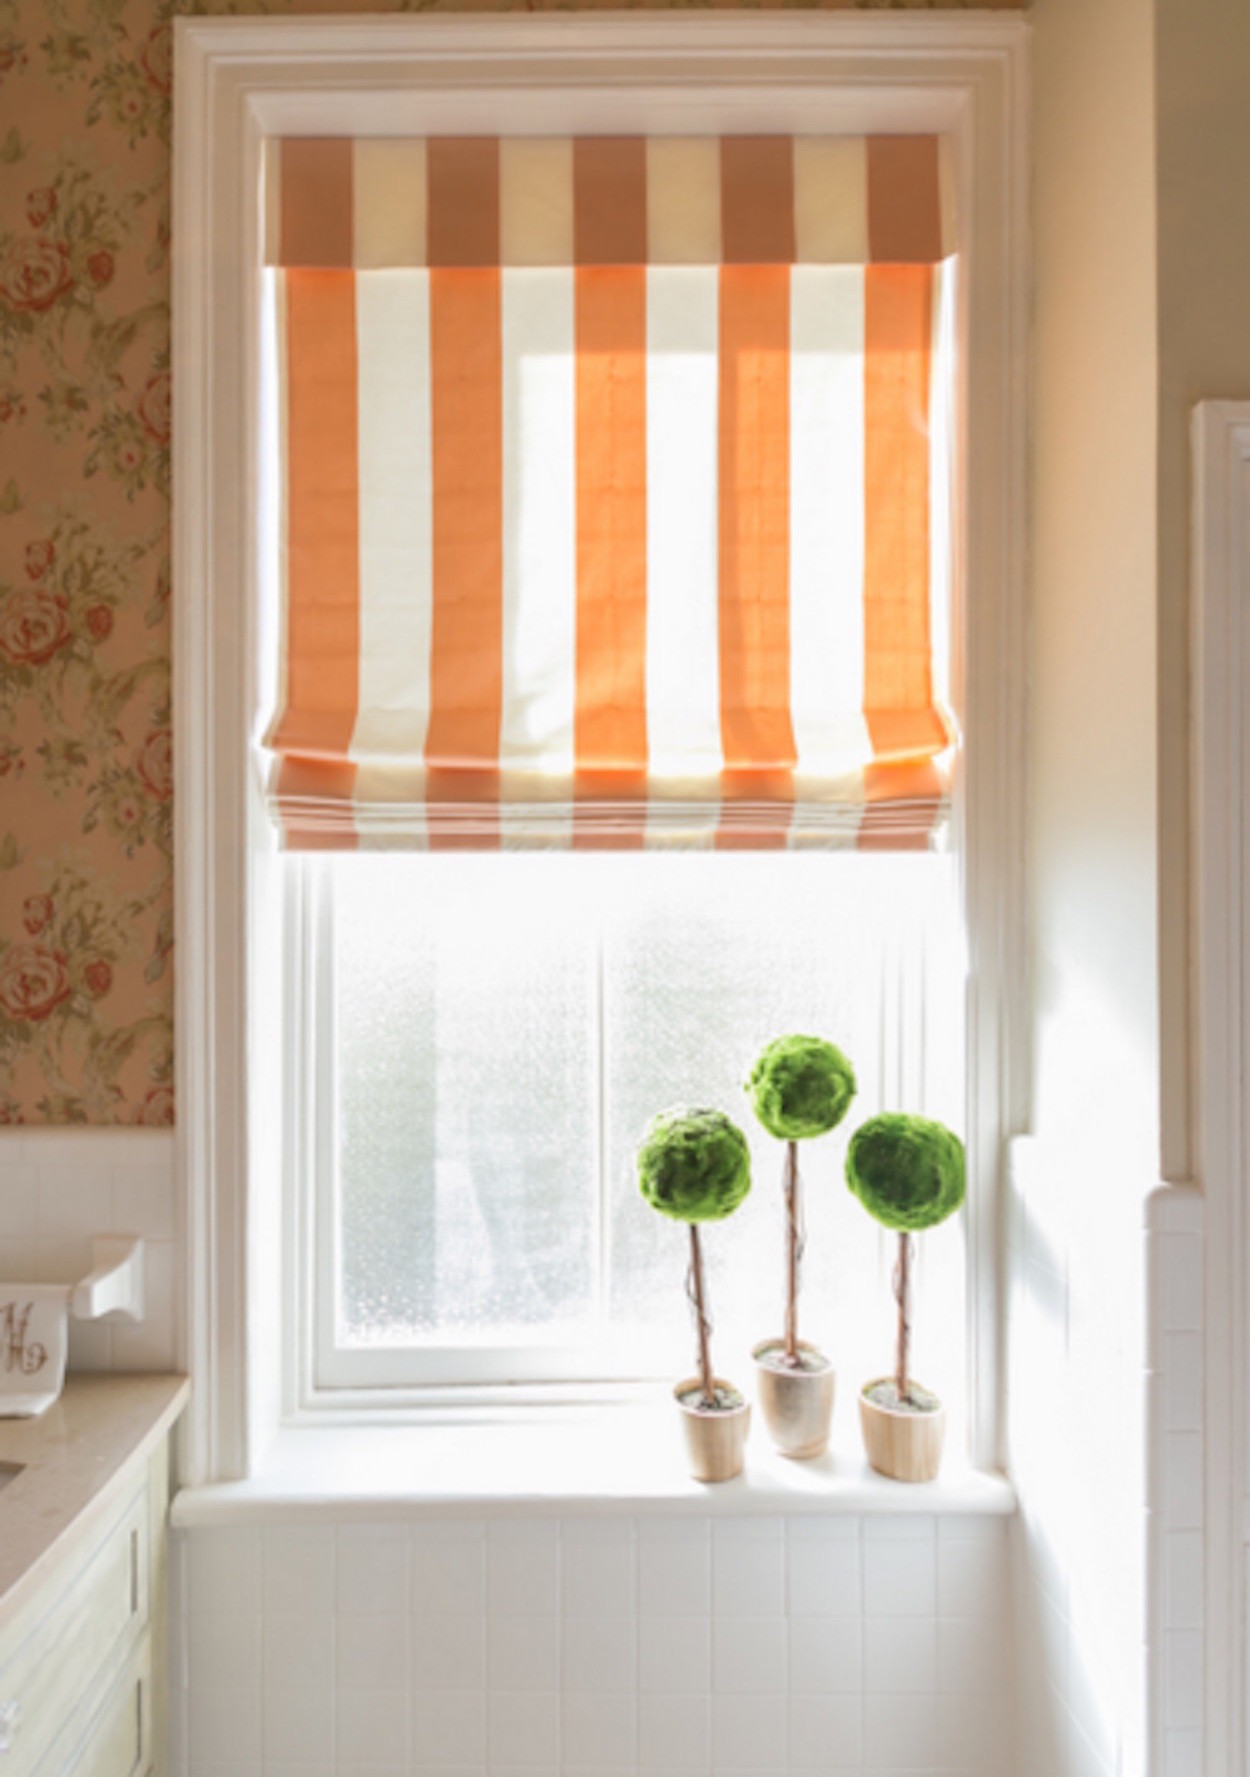 Bathtub window curtain ideas curtain menzilperde net for What type of blinds for bathroom